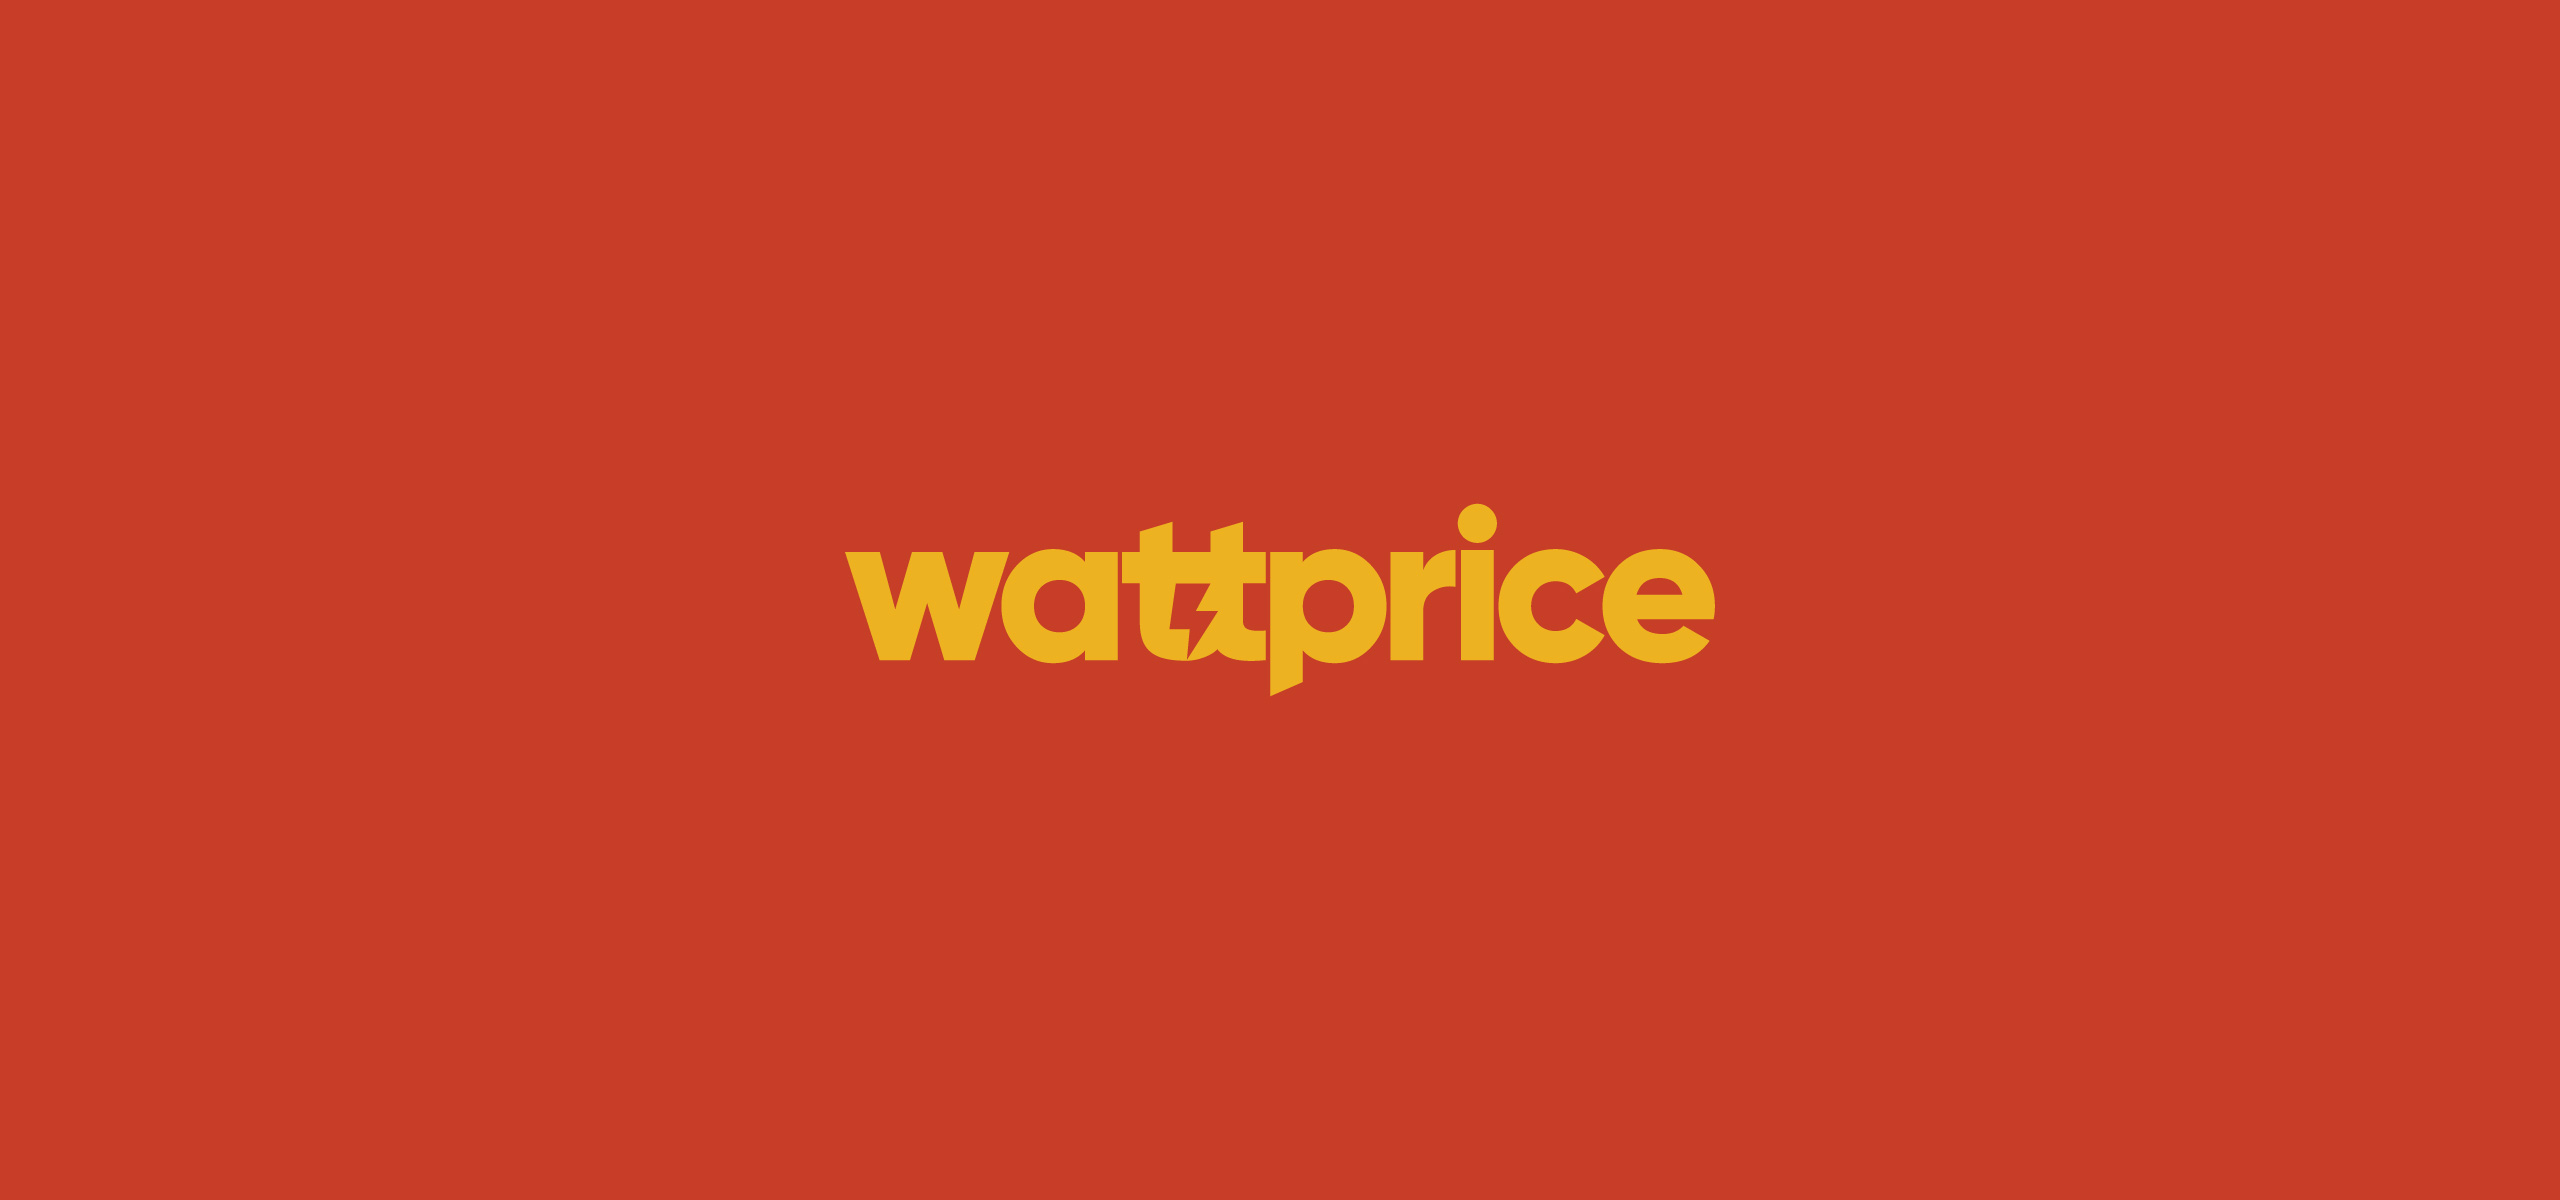 Electrical Services Company Wattprice based in Singapore. Industrial Company Brand Logo.